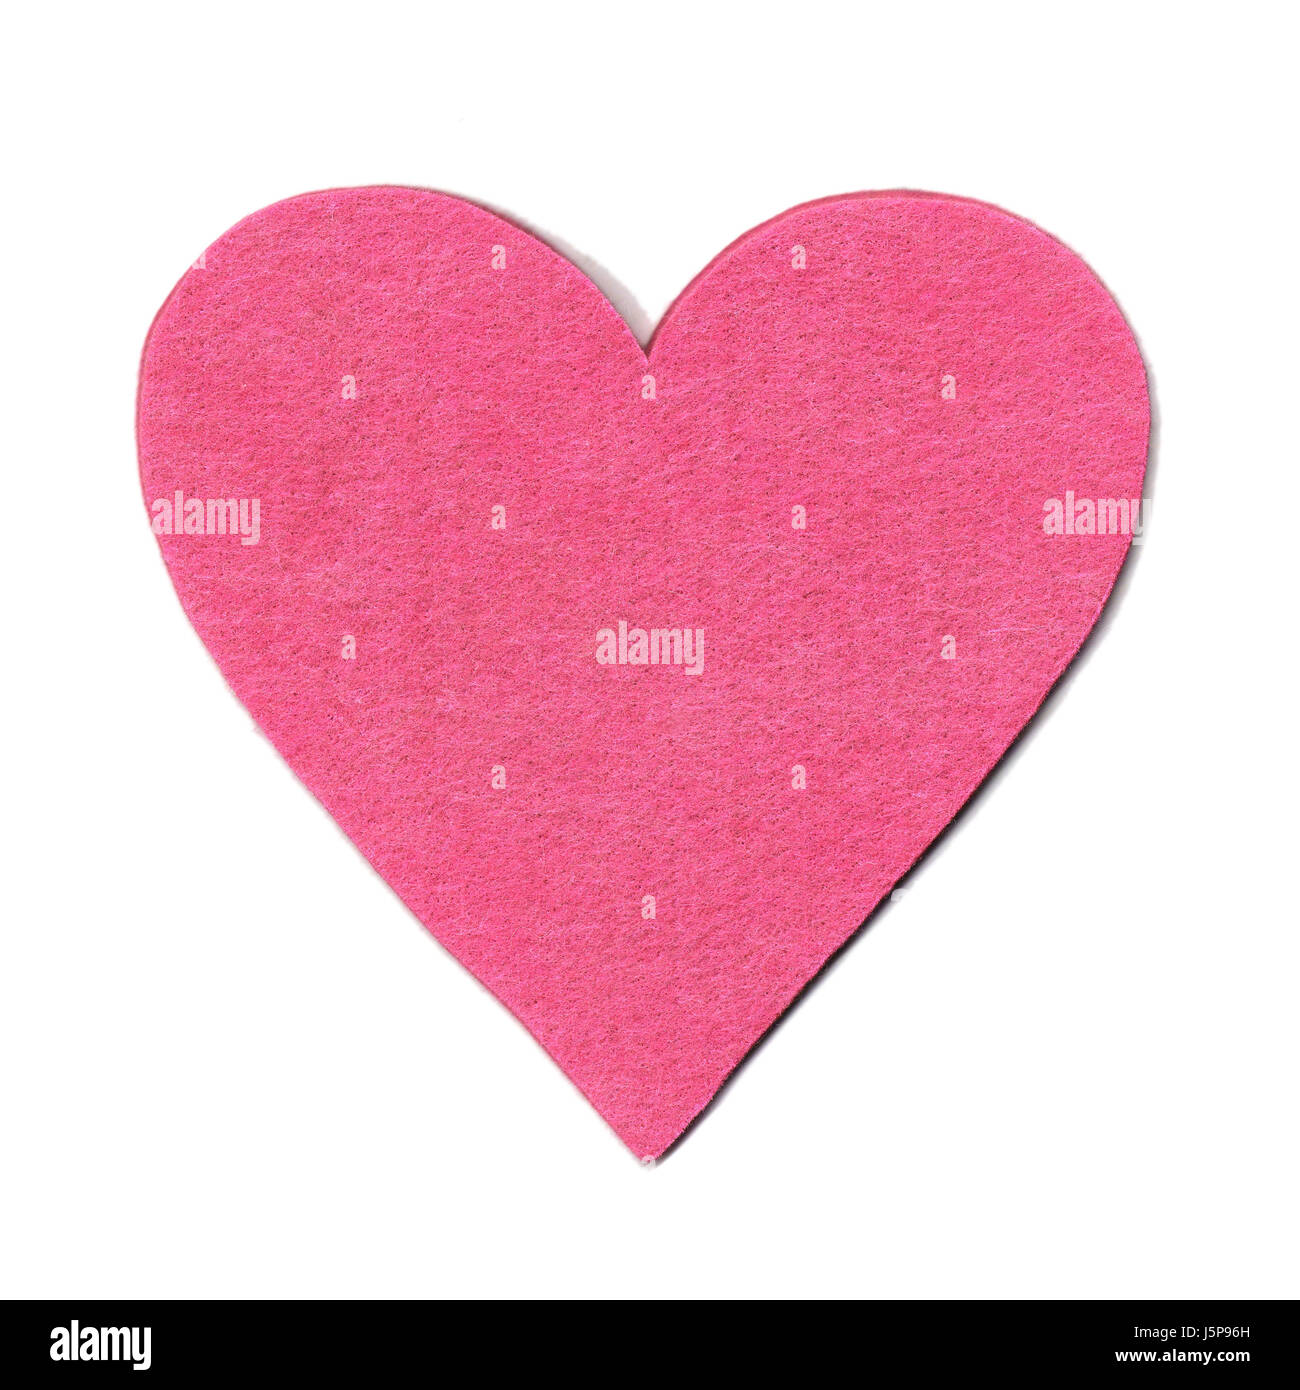 feeling soft romanticism magenta felt love in love fell in love emotion heart - Stock Image